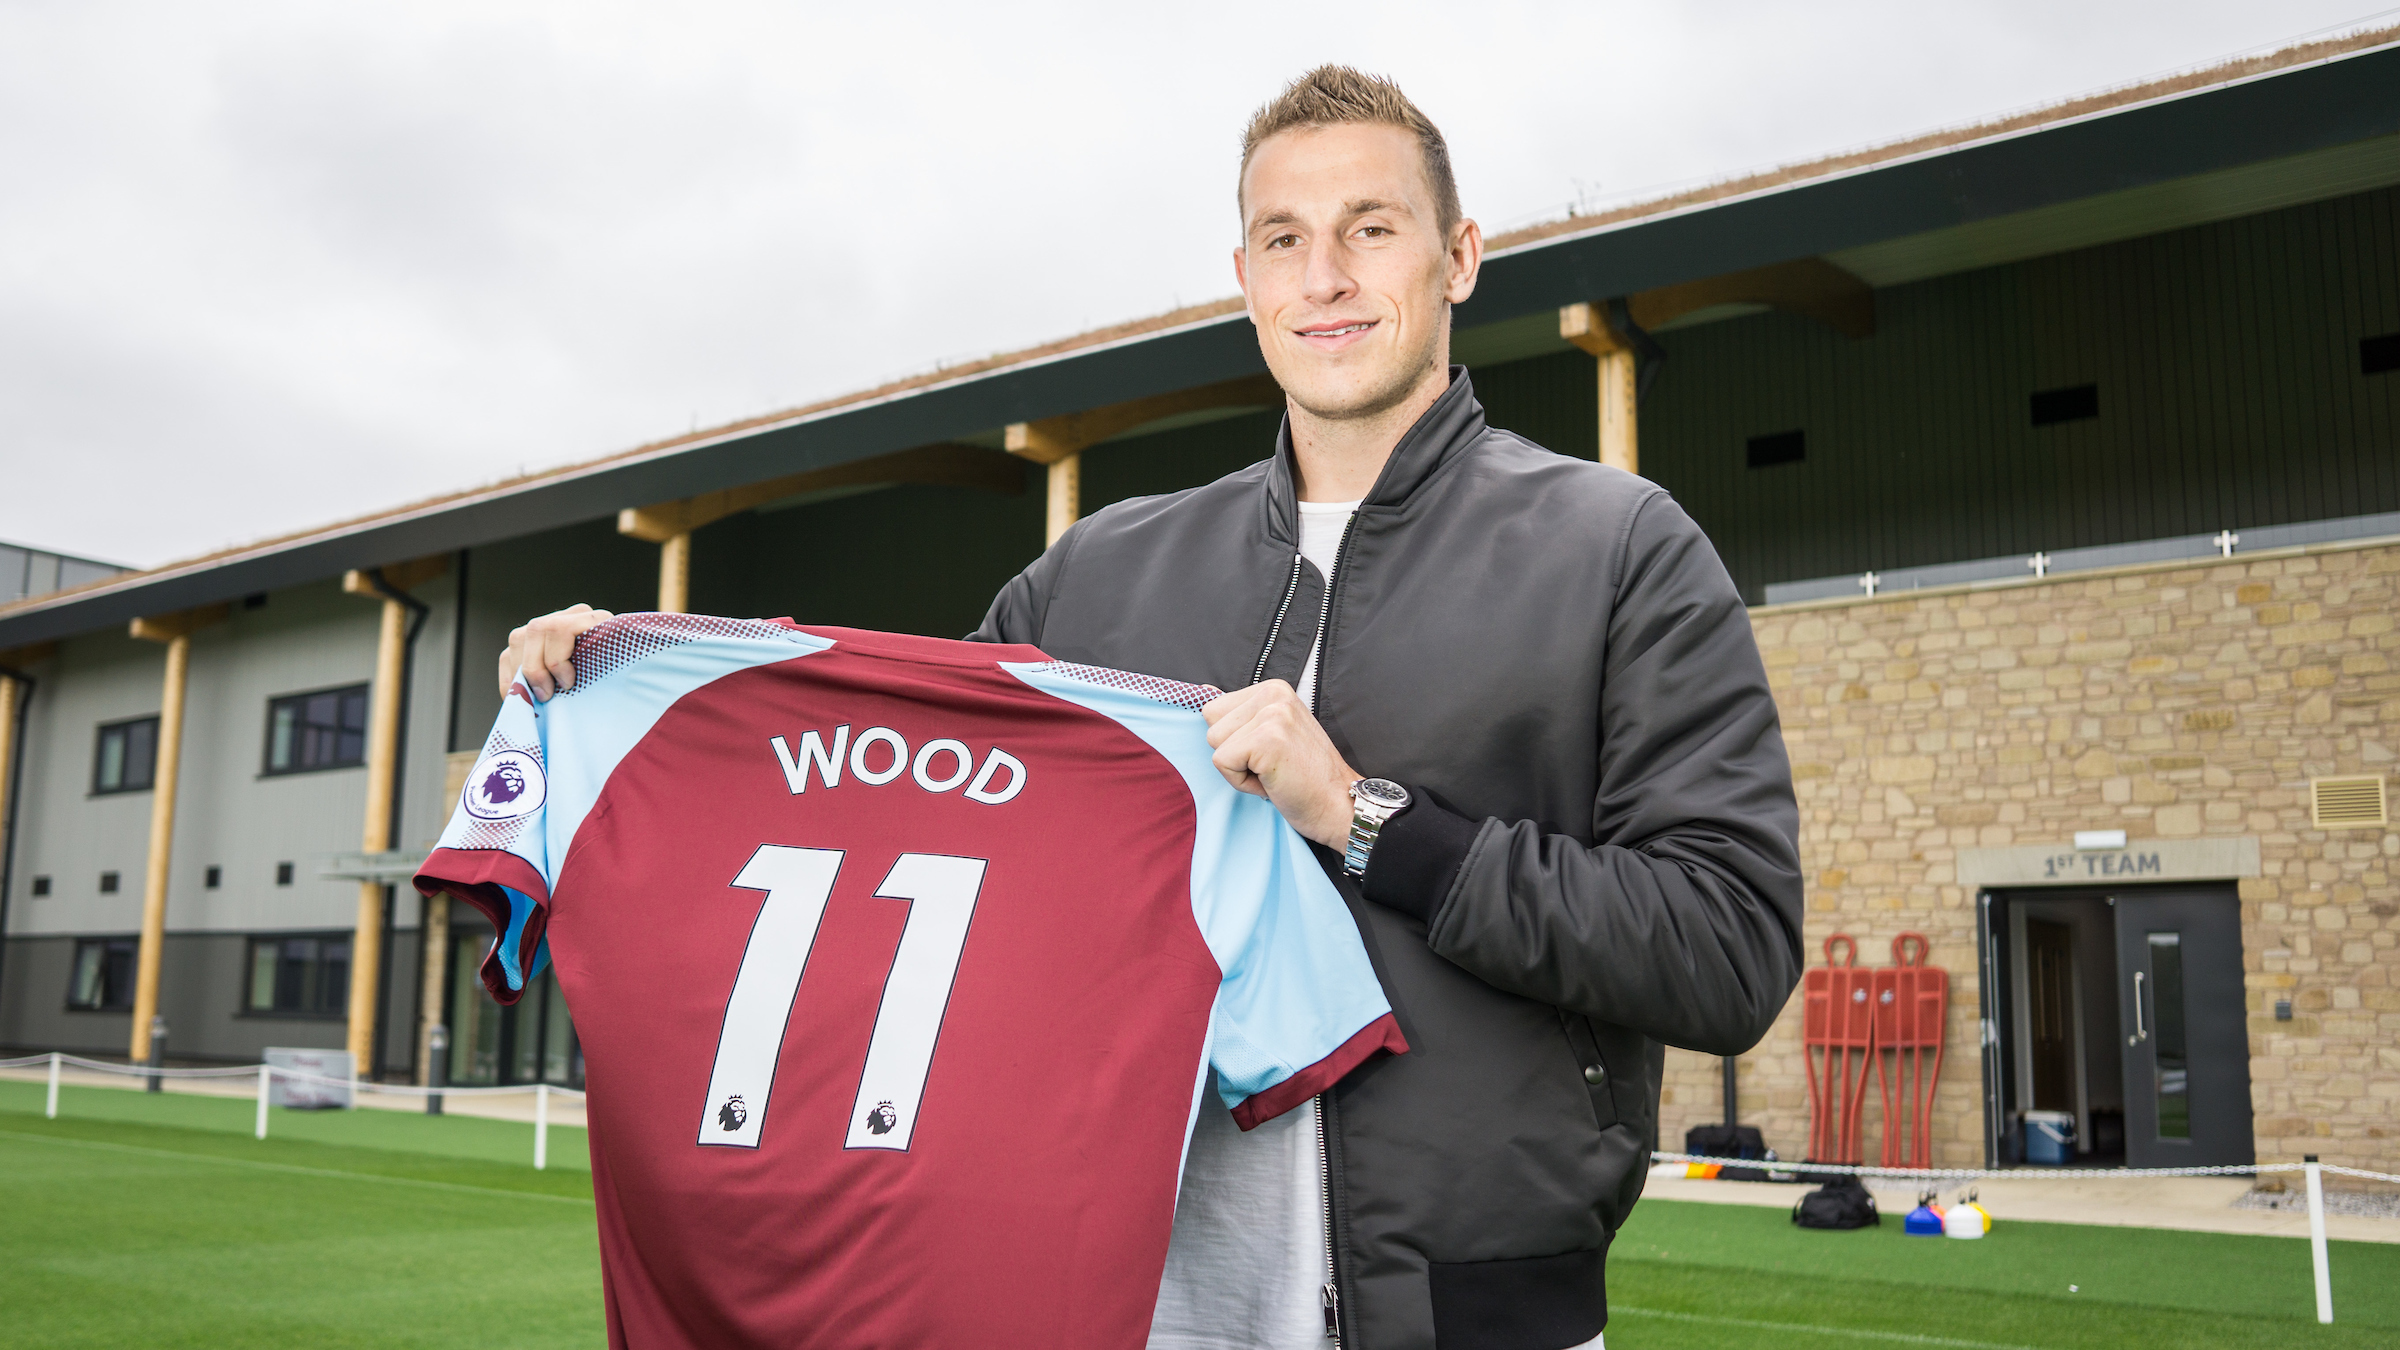 Chris Wood has joined Burnley on a four-year deal